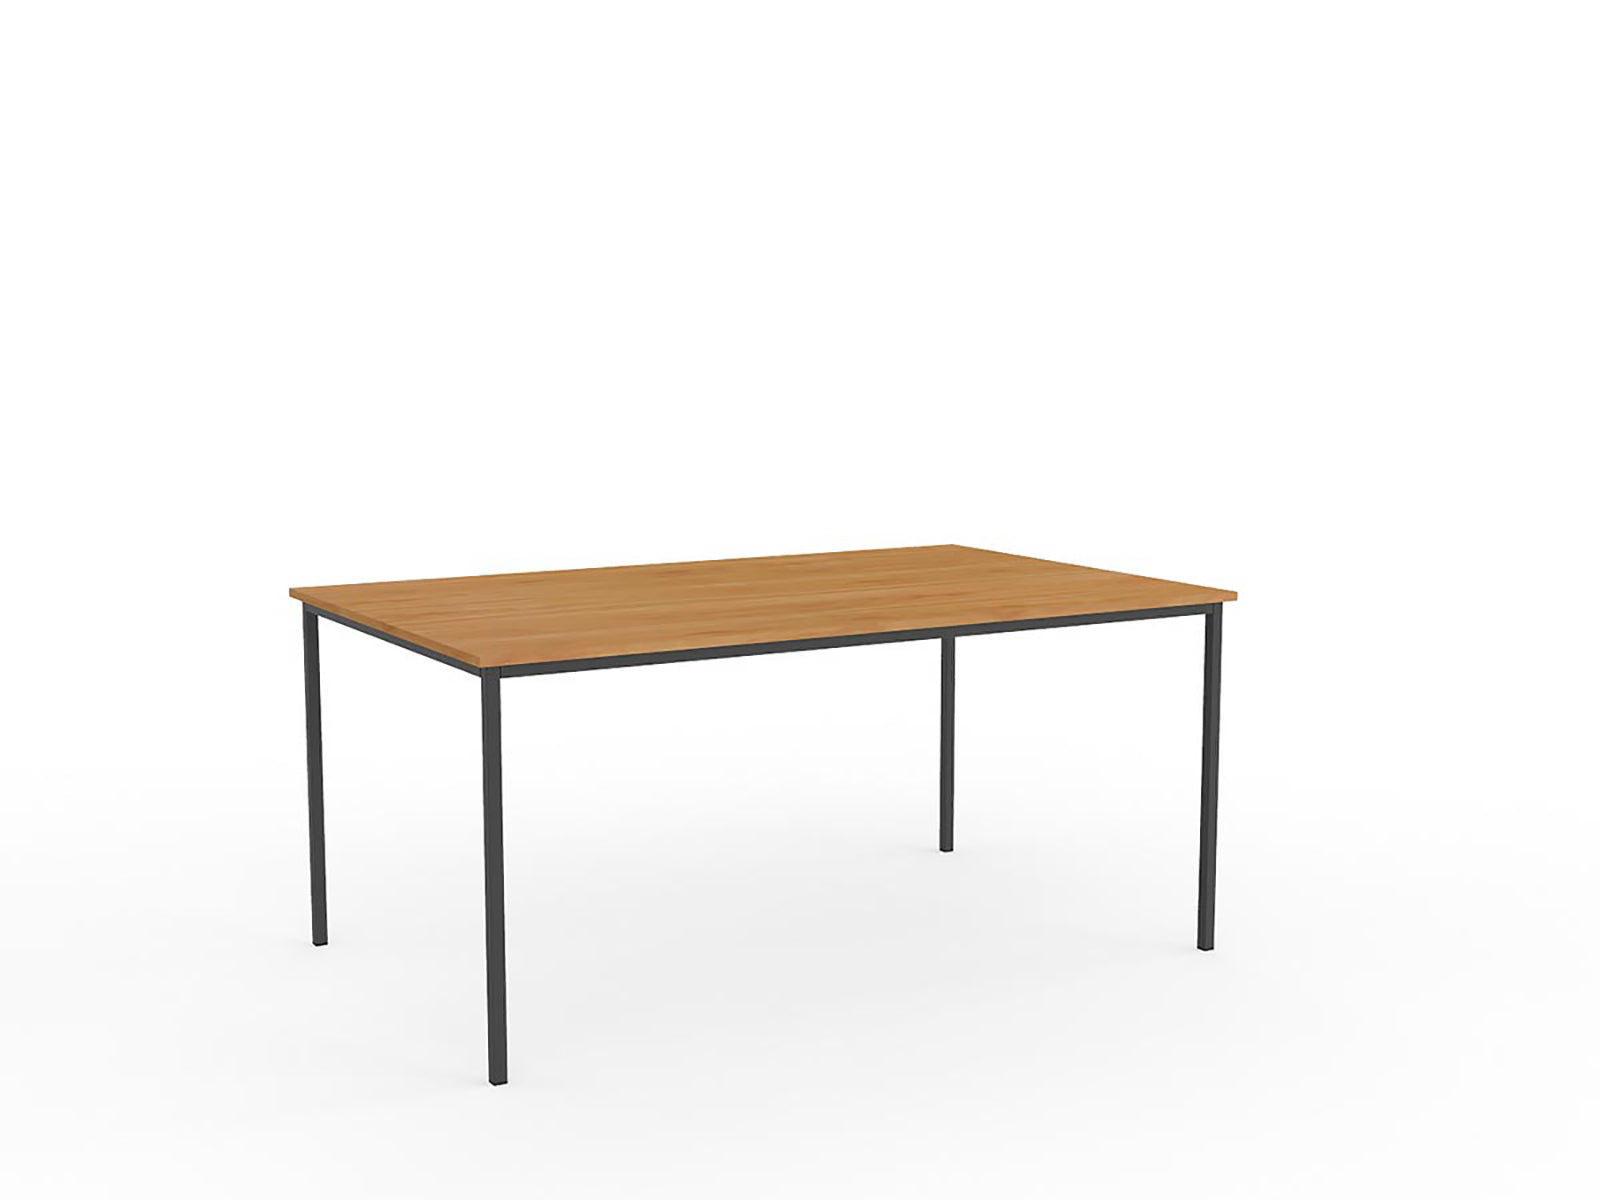 Ergoplan 1.6m Canteen Table - Workspace Furniture Home and Office Cafe Tables